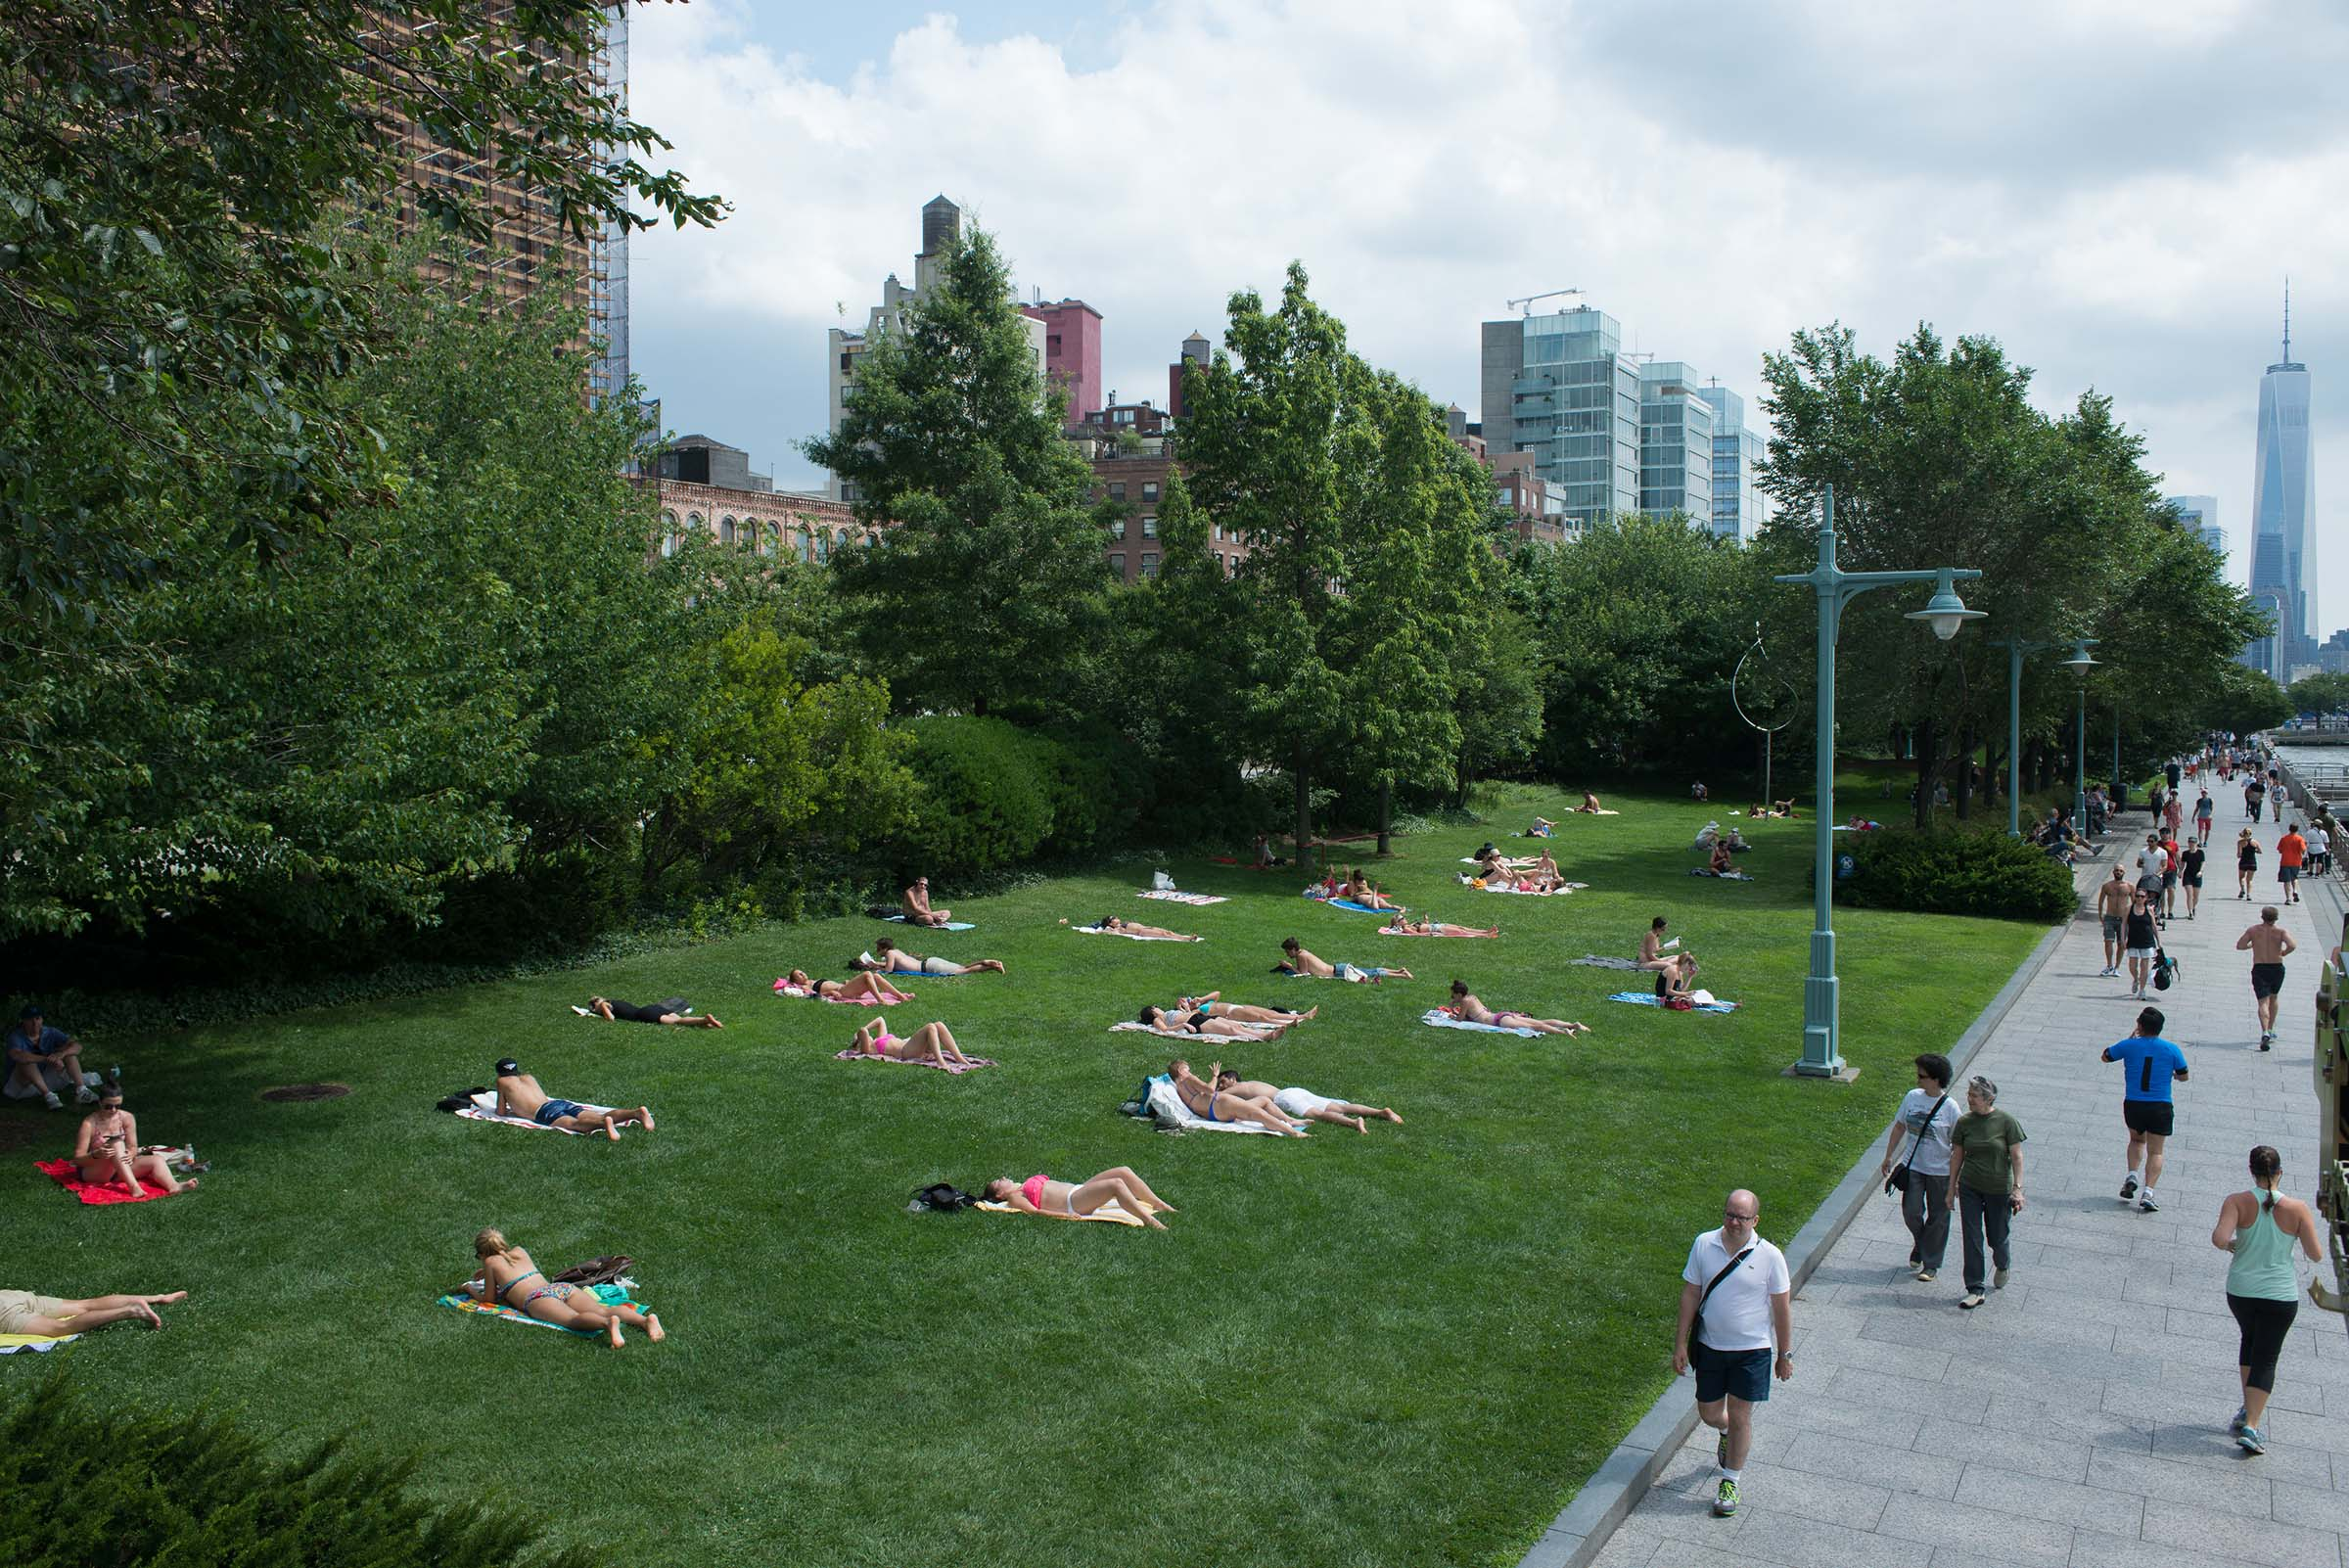 Park visitors relax on the Greenwich Village upland lawns